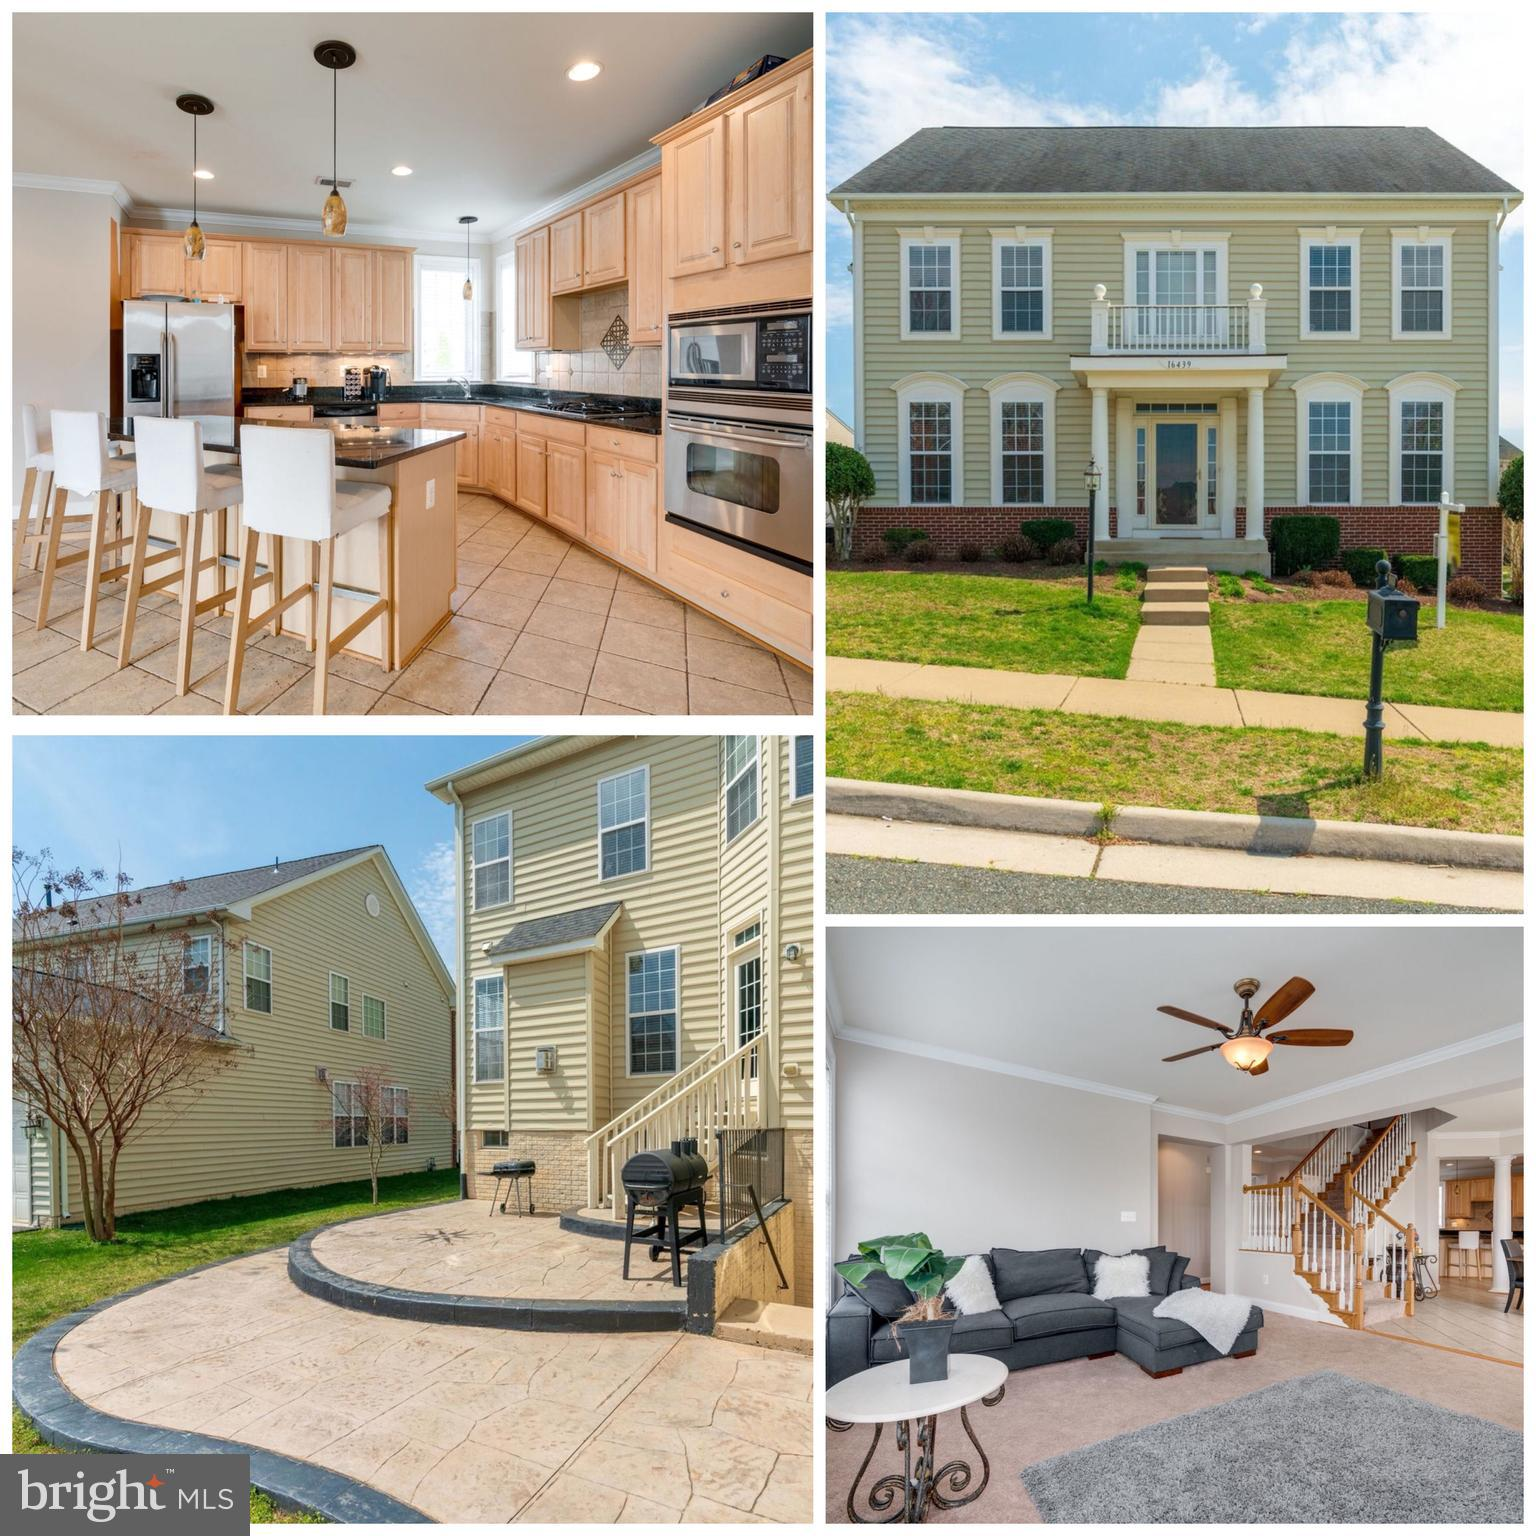 WOW, What a Price for this Elegant & Spacious home in sought after community, Port Potomac! You will appreciate what this fabulous 5600+ Sqft Home has to offer. Fall in love with the Gourmet Kitchen suitable for any chef who loves cooking for family or friends! Relax in Master bedroom w/ tray ceiling & sitting room. You will get the Spa experience when you're in your luxury bathroom.   Dine or entertain guests on your back patio! The entire home is Freshly painted with Crowne Moldings throughout, SS appliances, granite, cooktop, and maple cabinets, in-ground sprinkler system- all the bells and whistles these former owners thought of it ALL- WOW!!>>PP is sought after community with indoor/outdoor pools, fitness center clubhouse, tot lots, soccer field, multi-purpose court, tennis courts, and a dog park. commuter close, everything you need is here, Don't miss this one!!